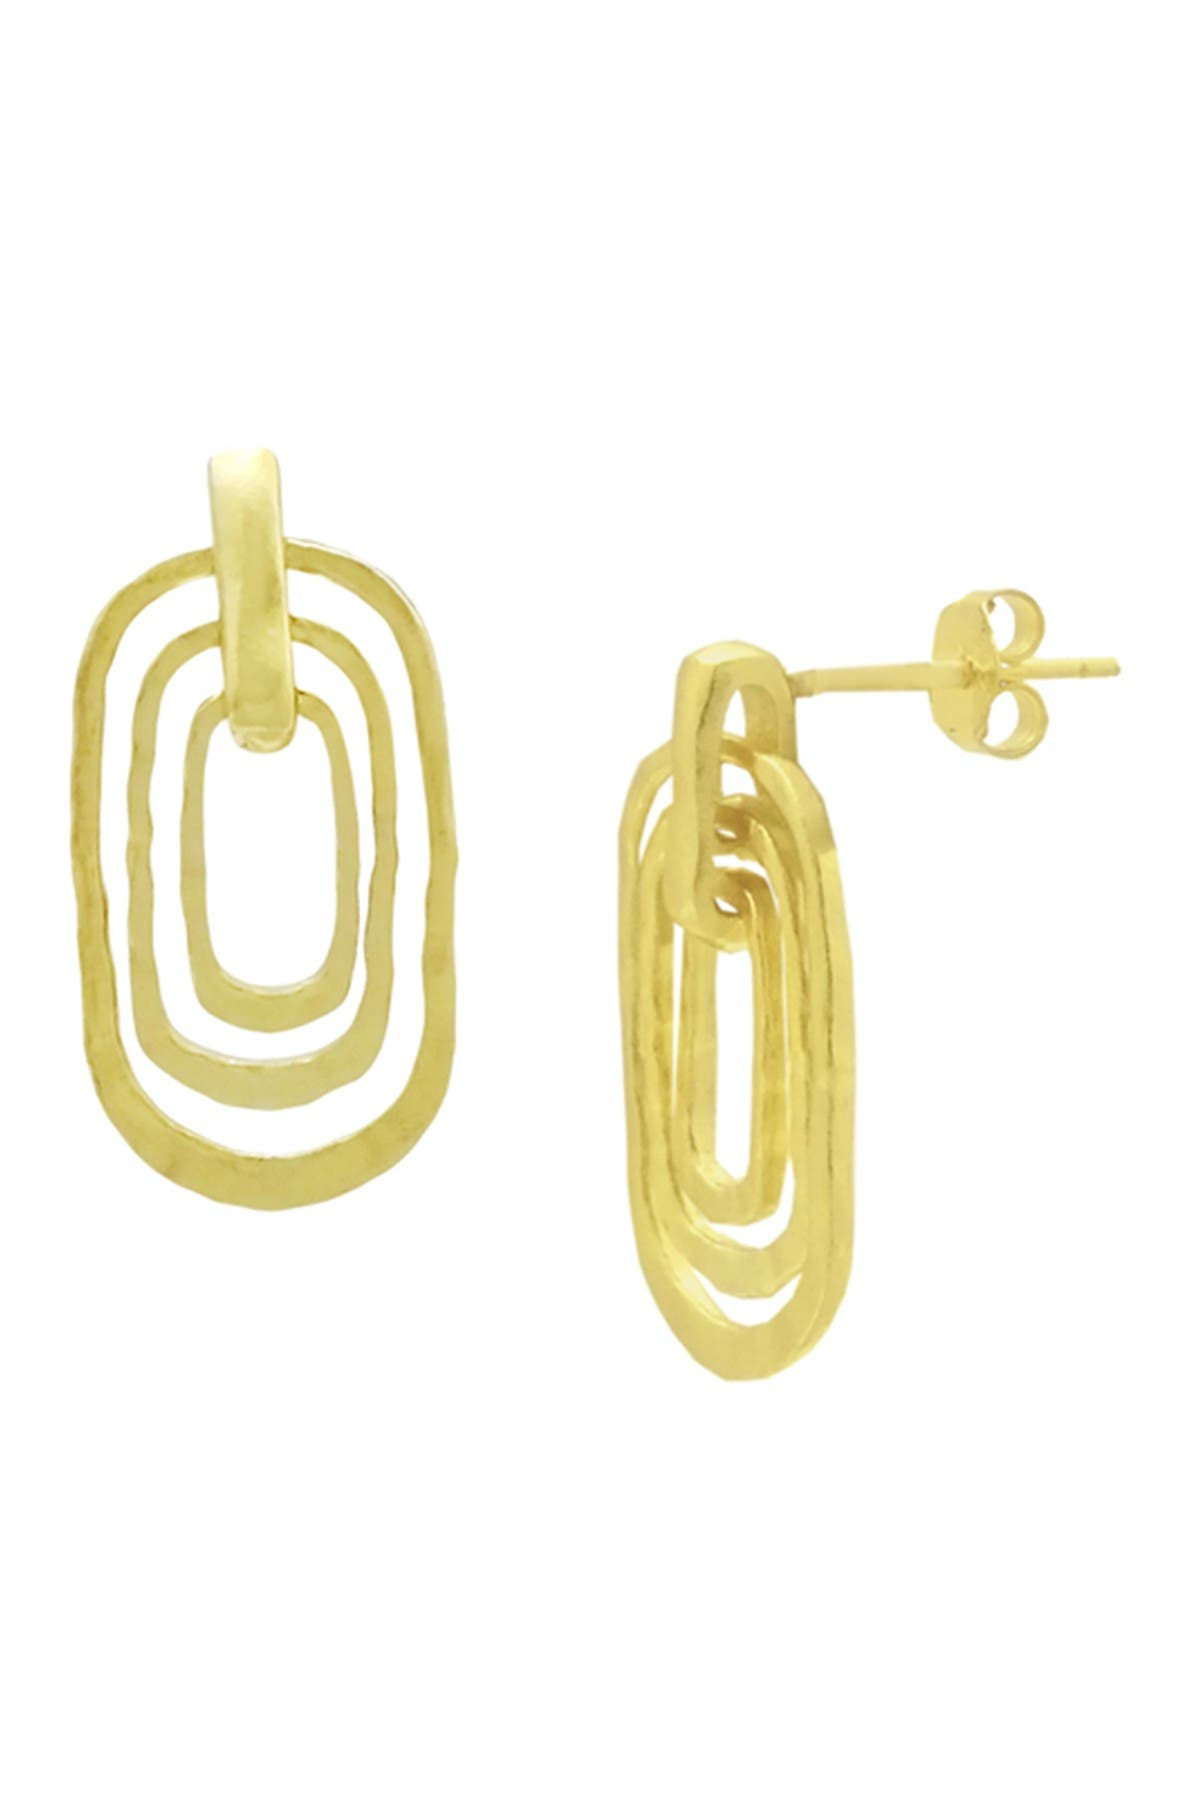 Image of Savvy Cie 18K Yellow Gold Vermeil Nesting Drop Earrings